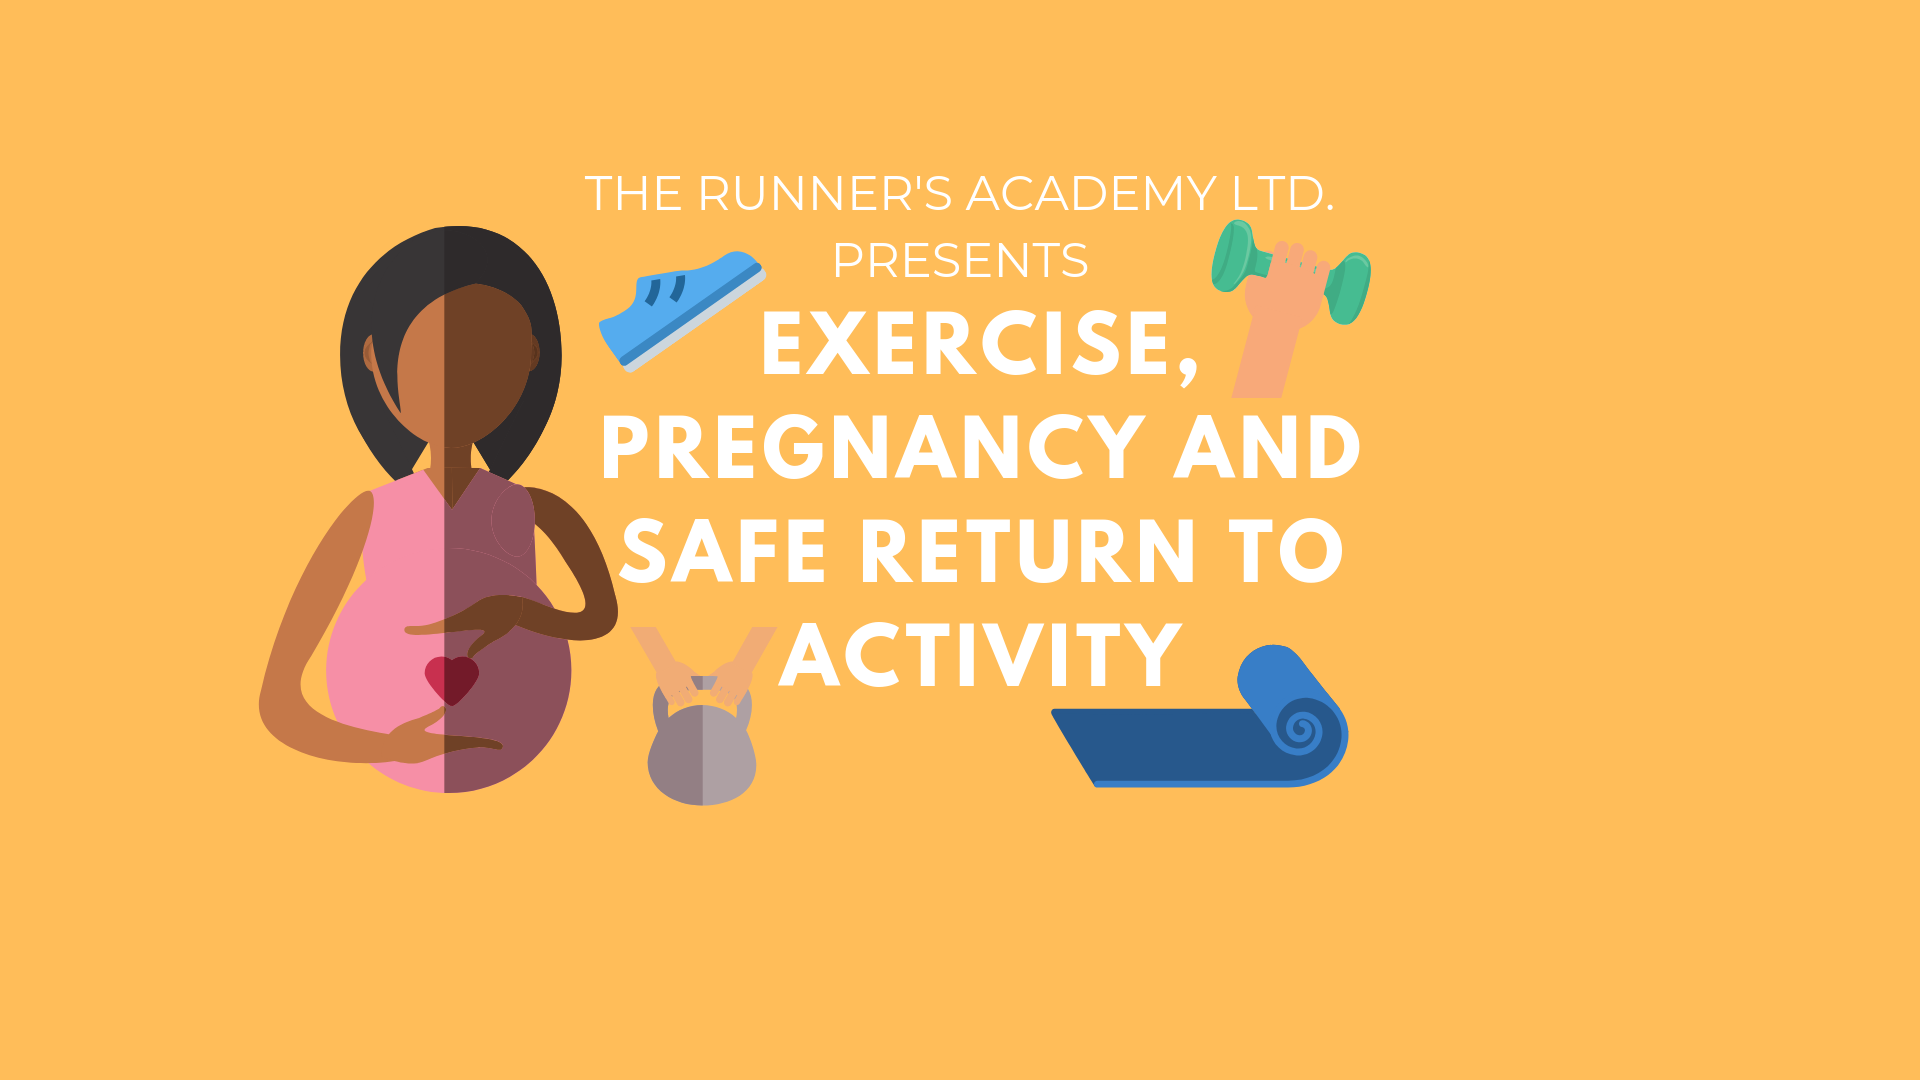 Exercise, Pregnancy & Safe Return to Activity @ The Runner's Academy